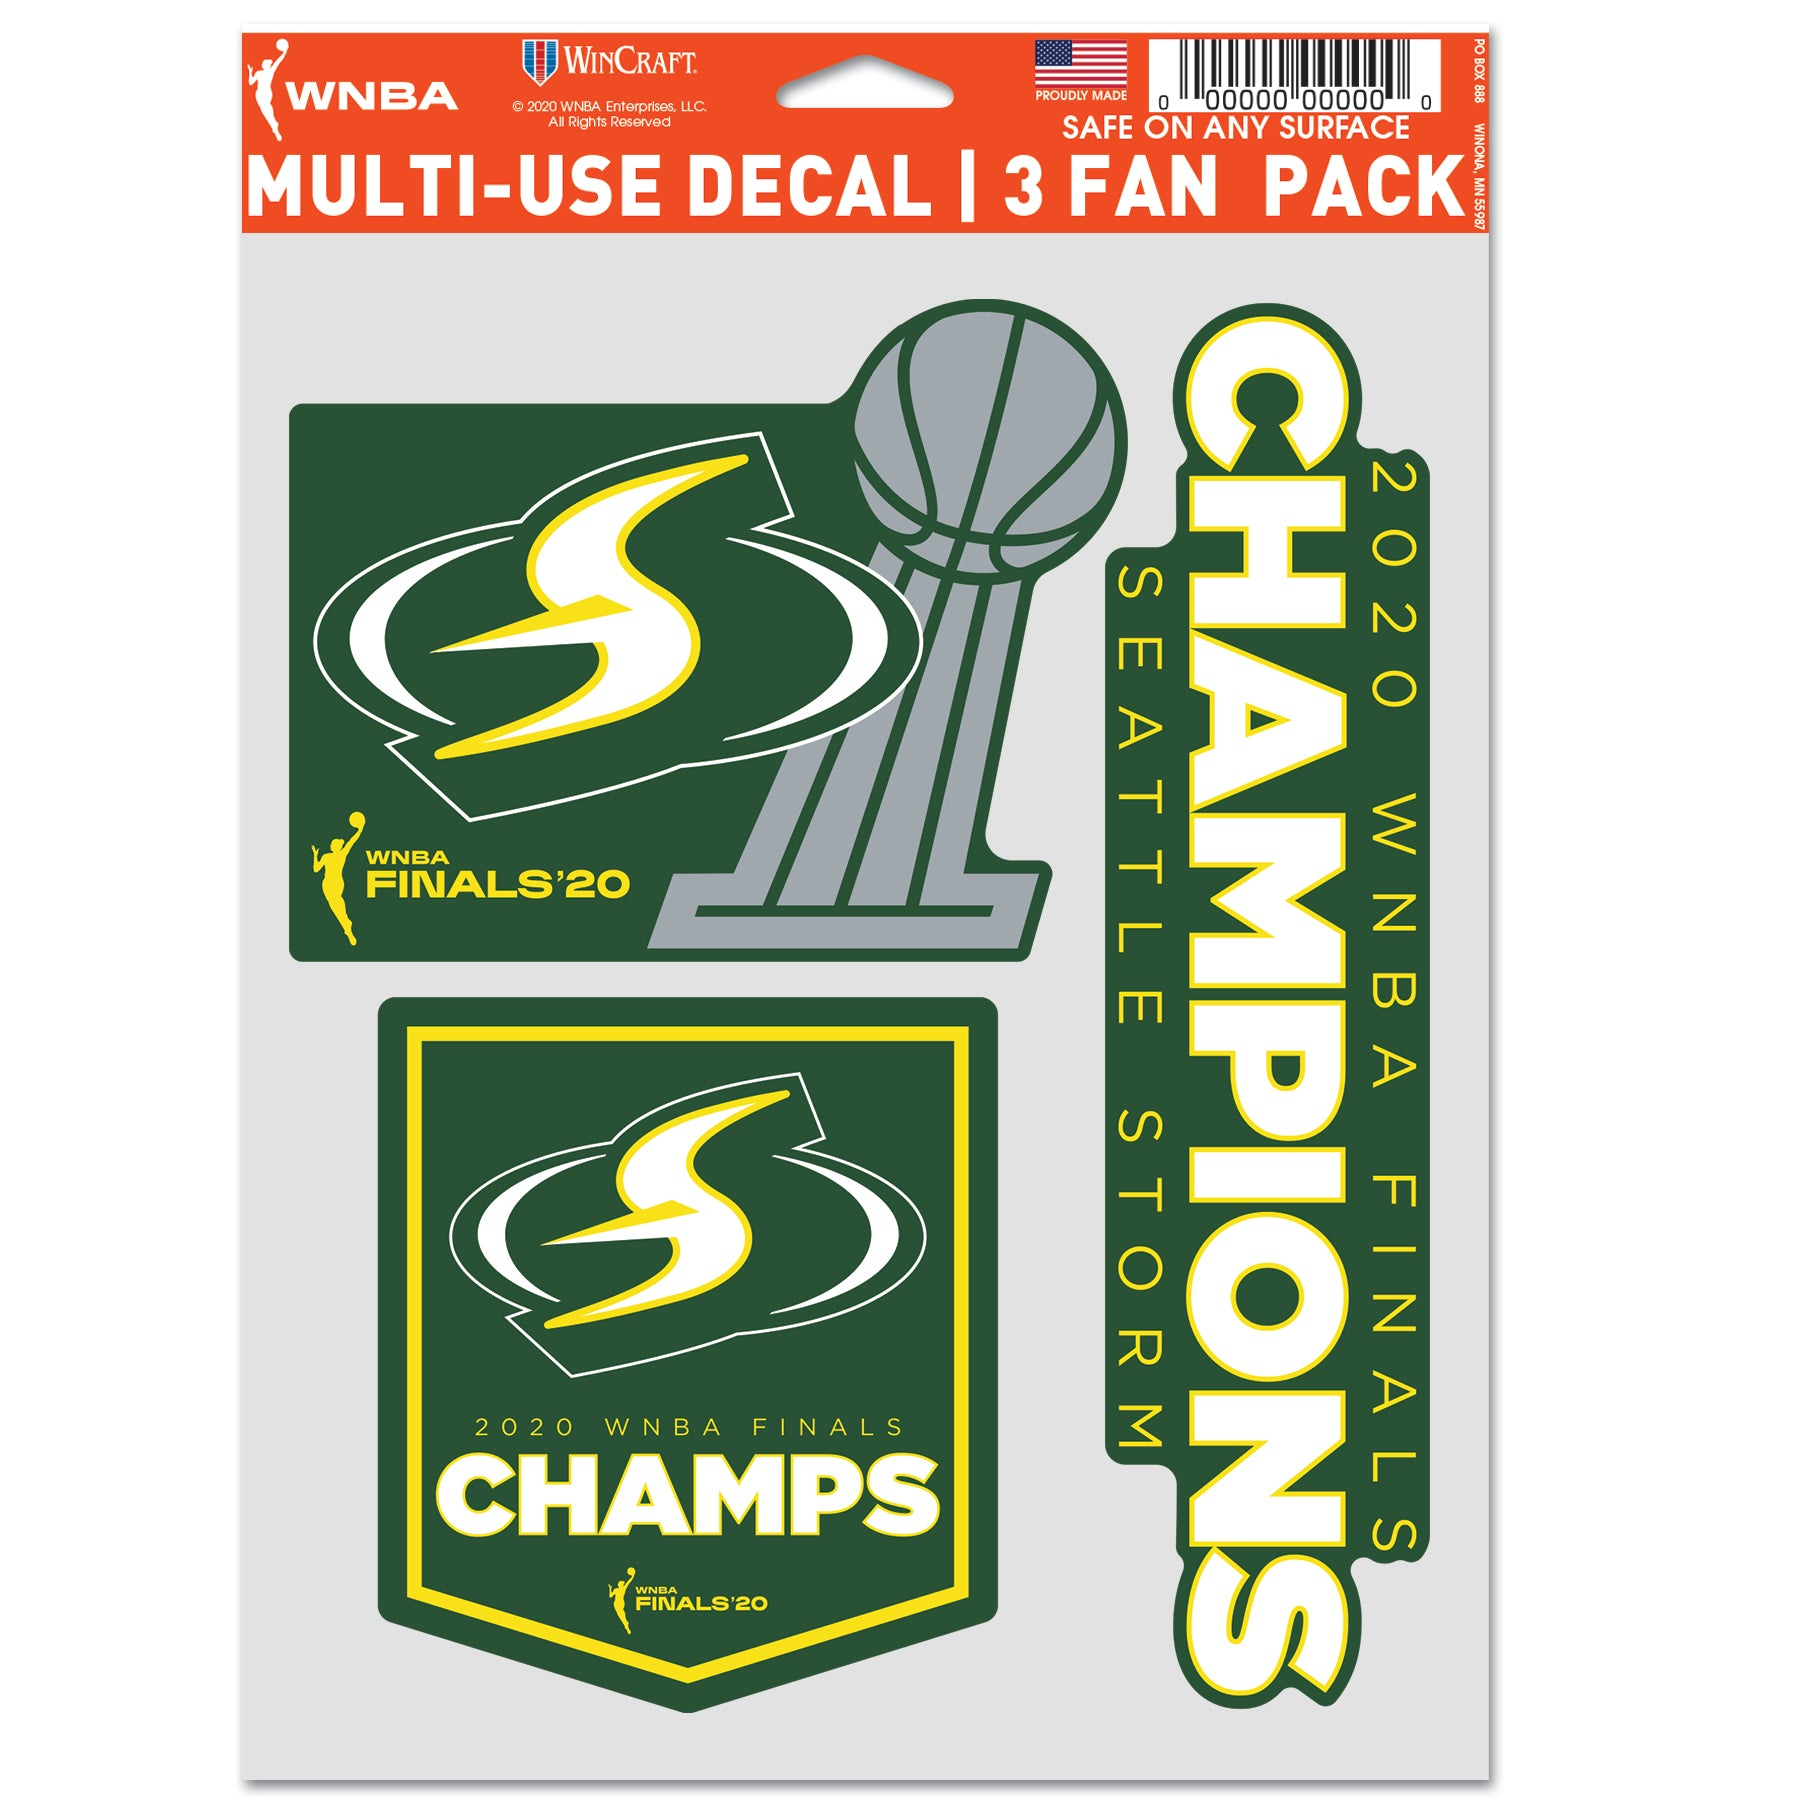 2020 Champs Decals Fan Pack